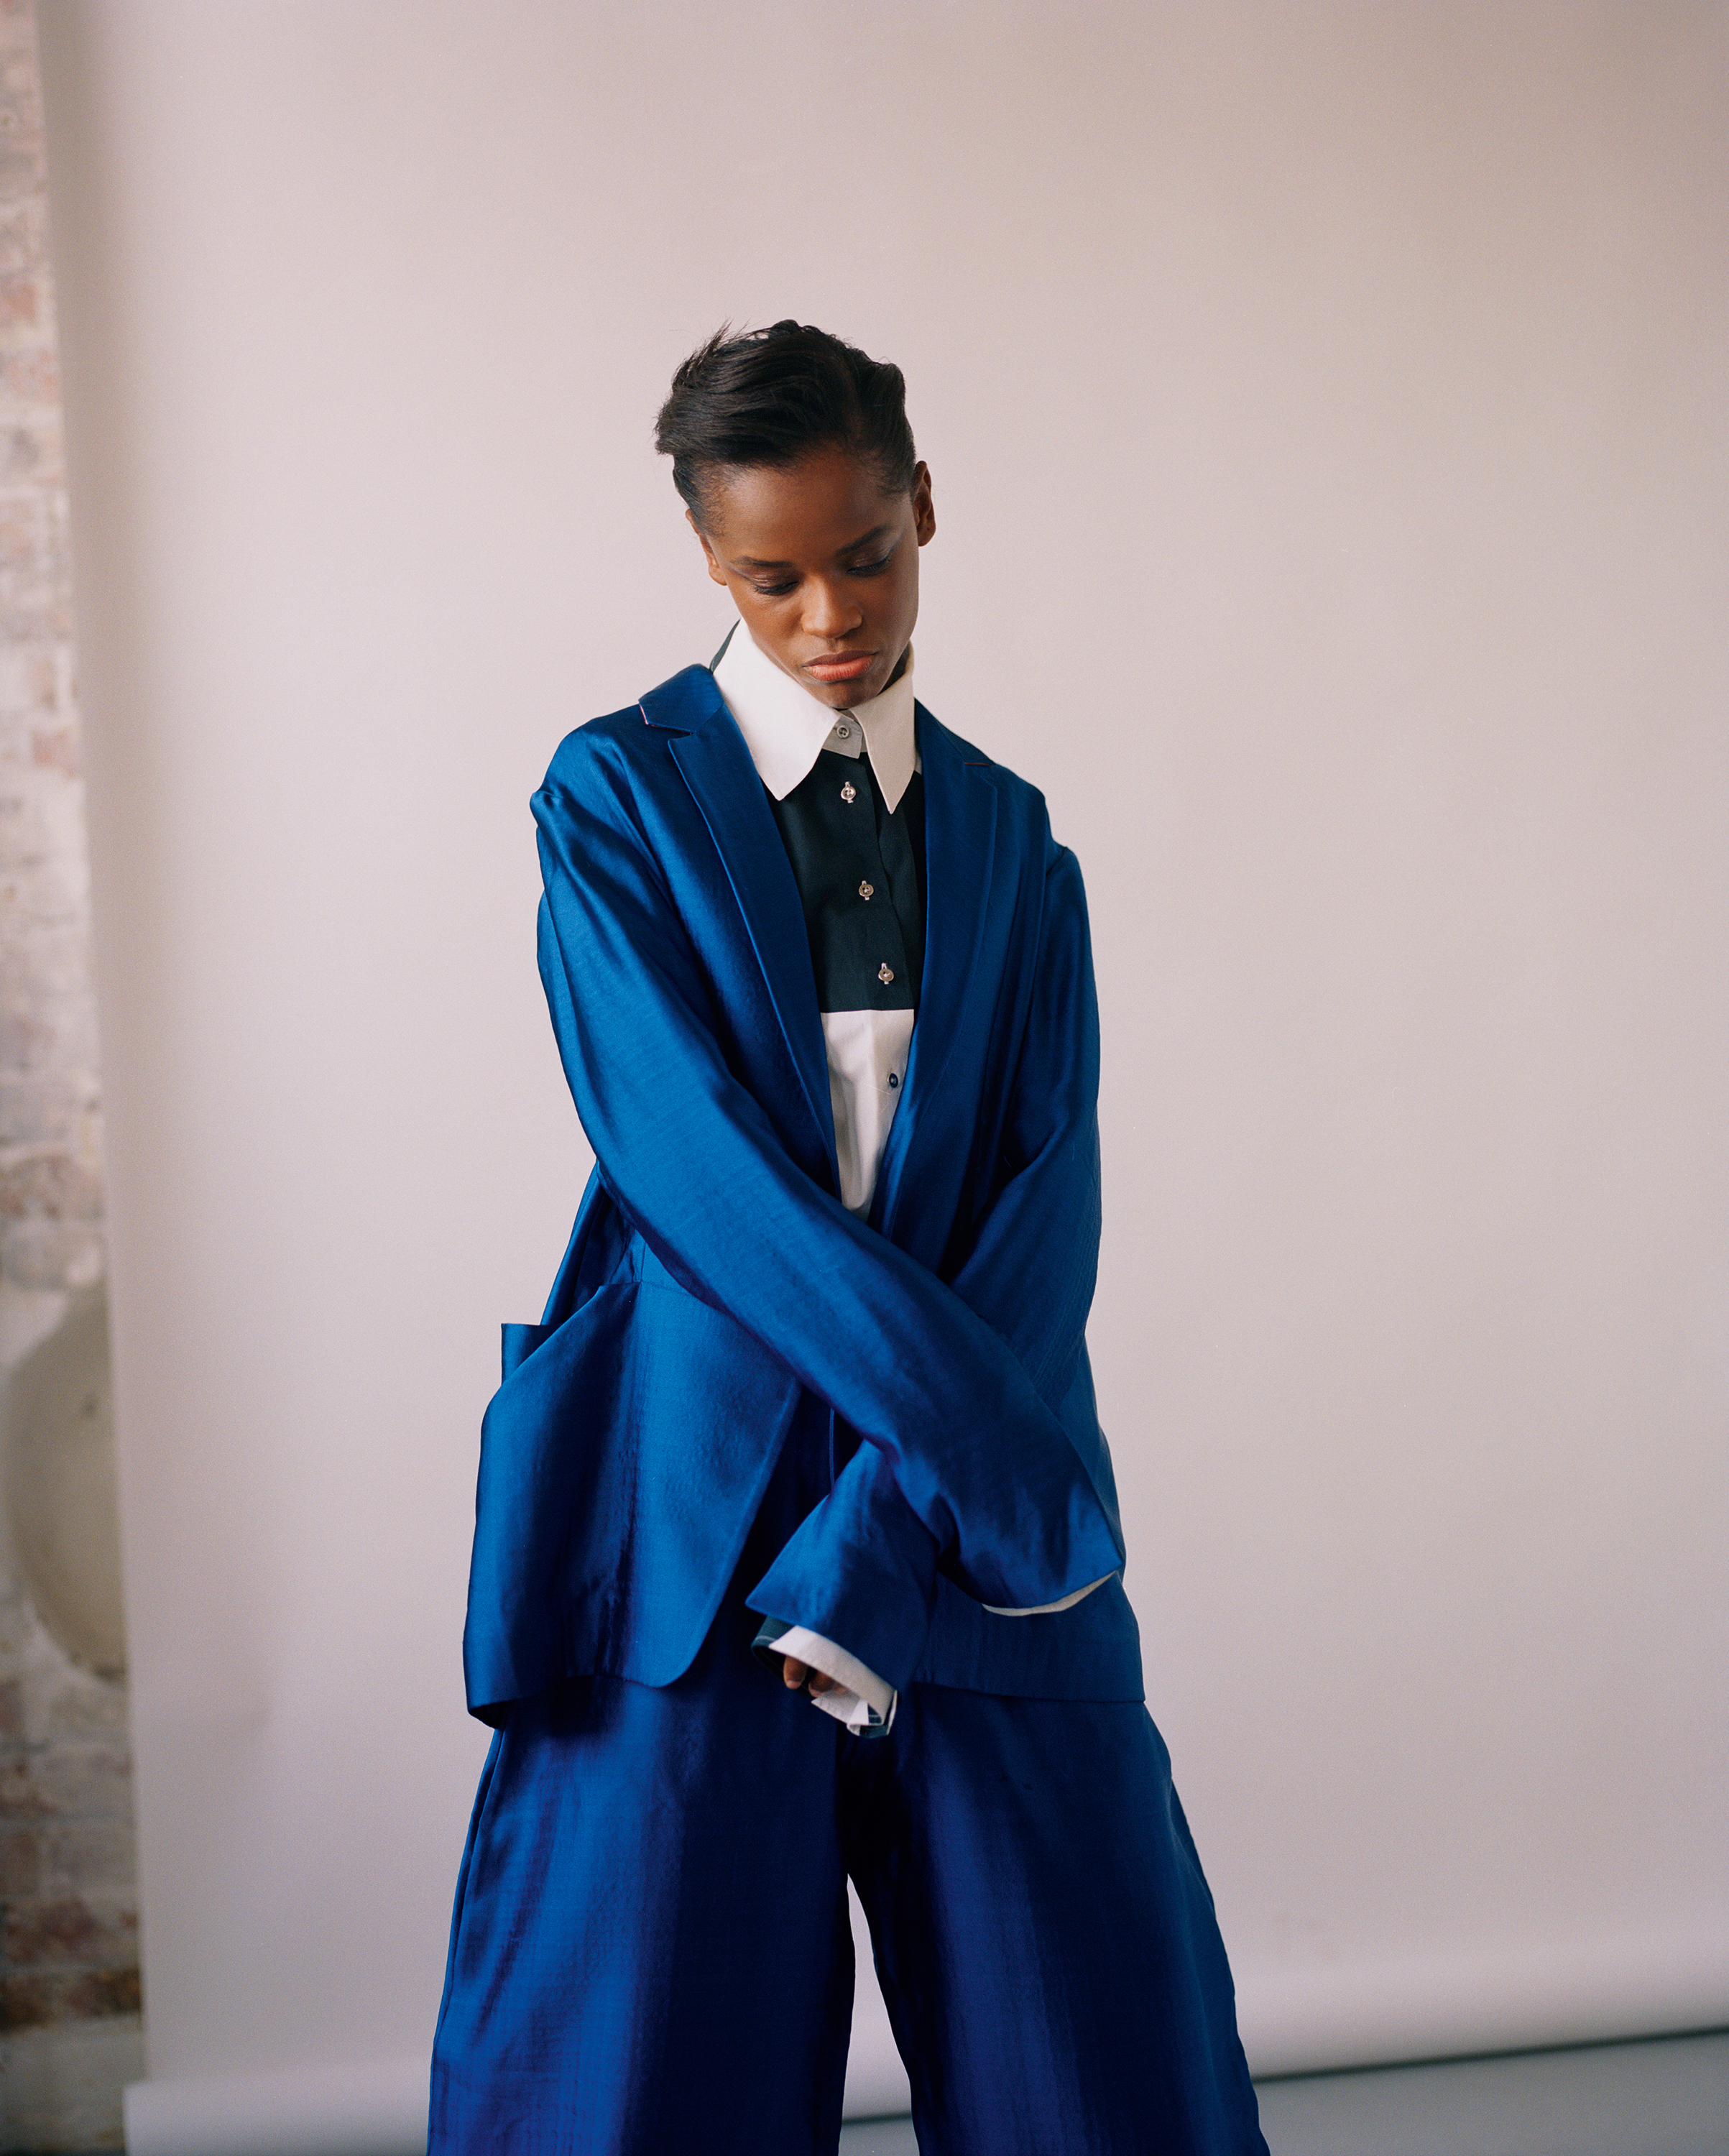 Letitia Wright On All Things Beauty